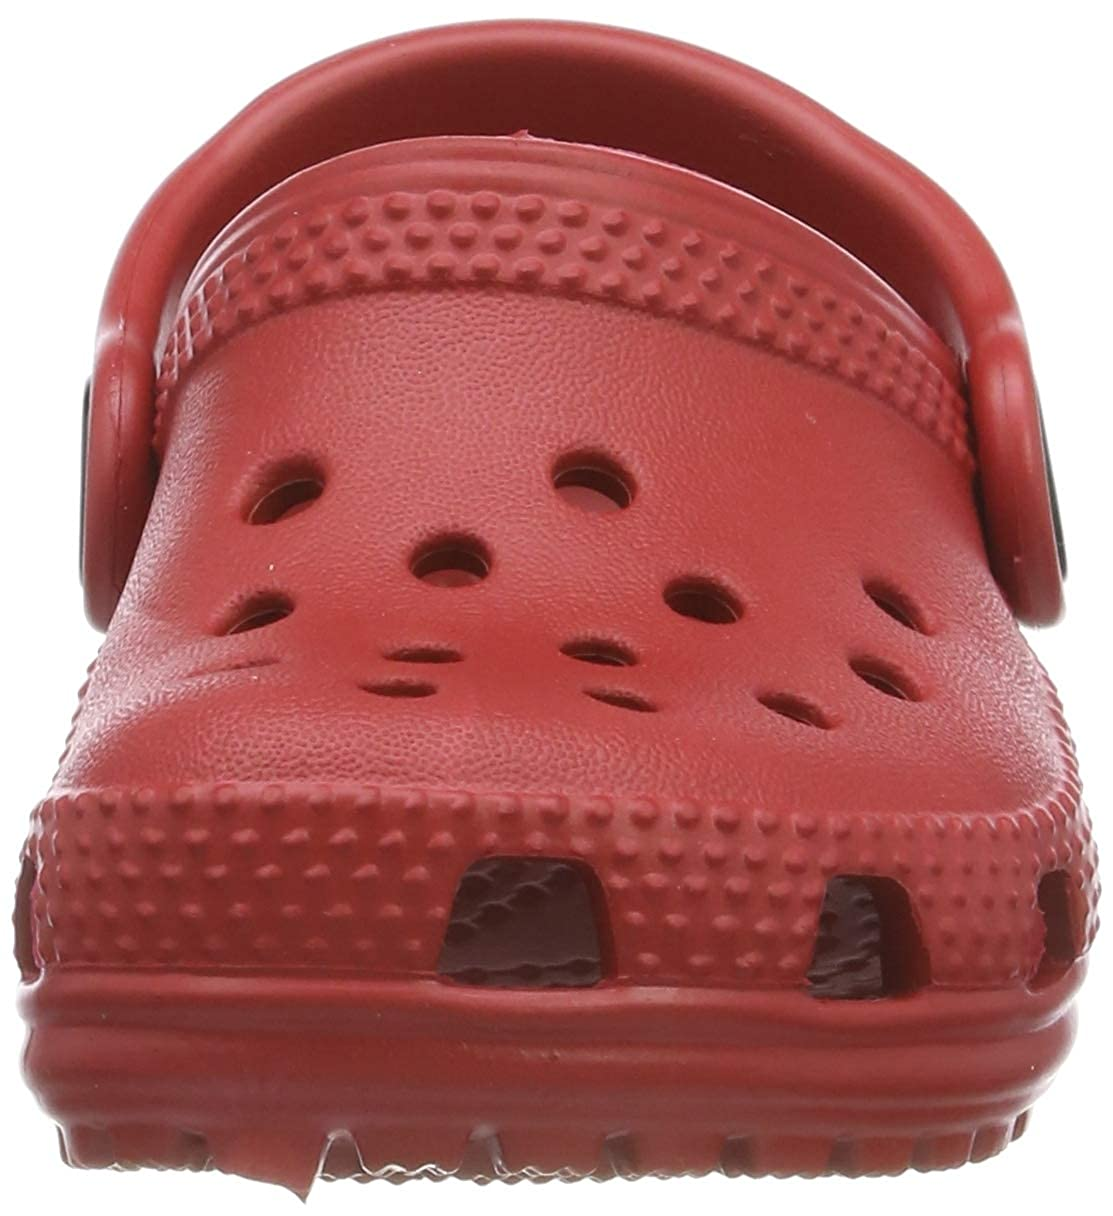 b4572ff0e7 Amazon.com | Crocs Kid's Classic Clog | Slip On Water Shoe for Toddlers,  Boys, Girls | Lightweight | Clogs & Mules